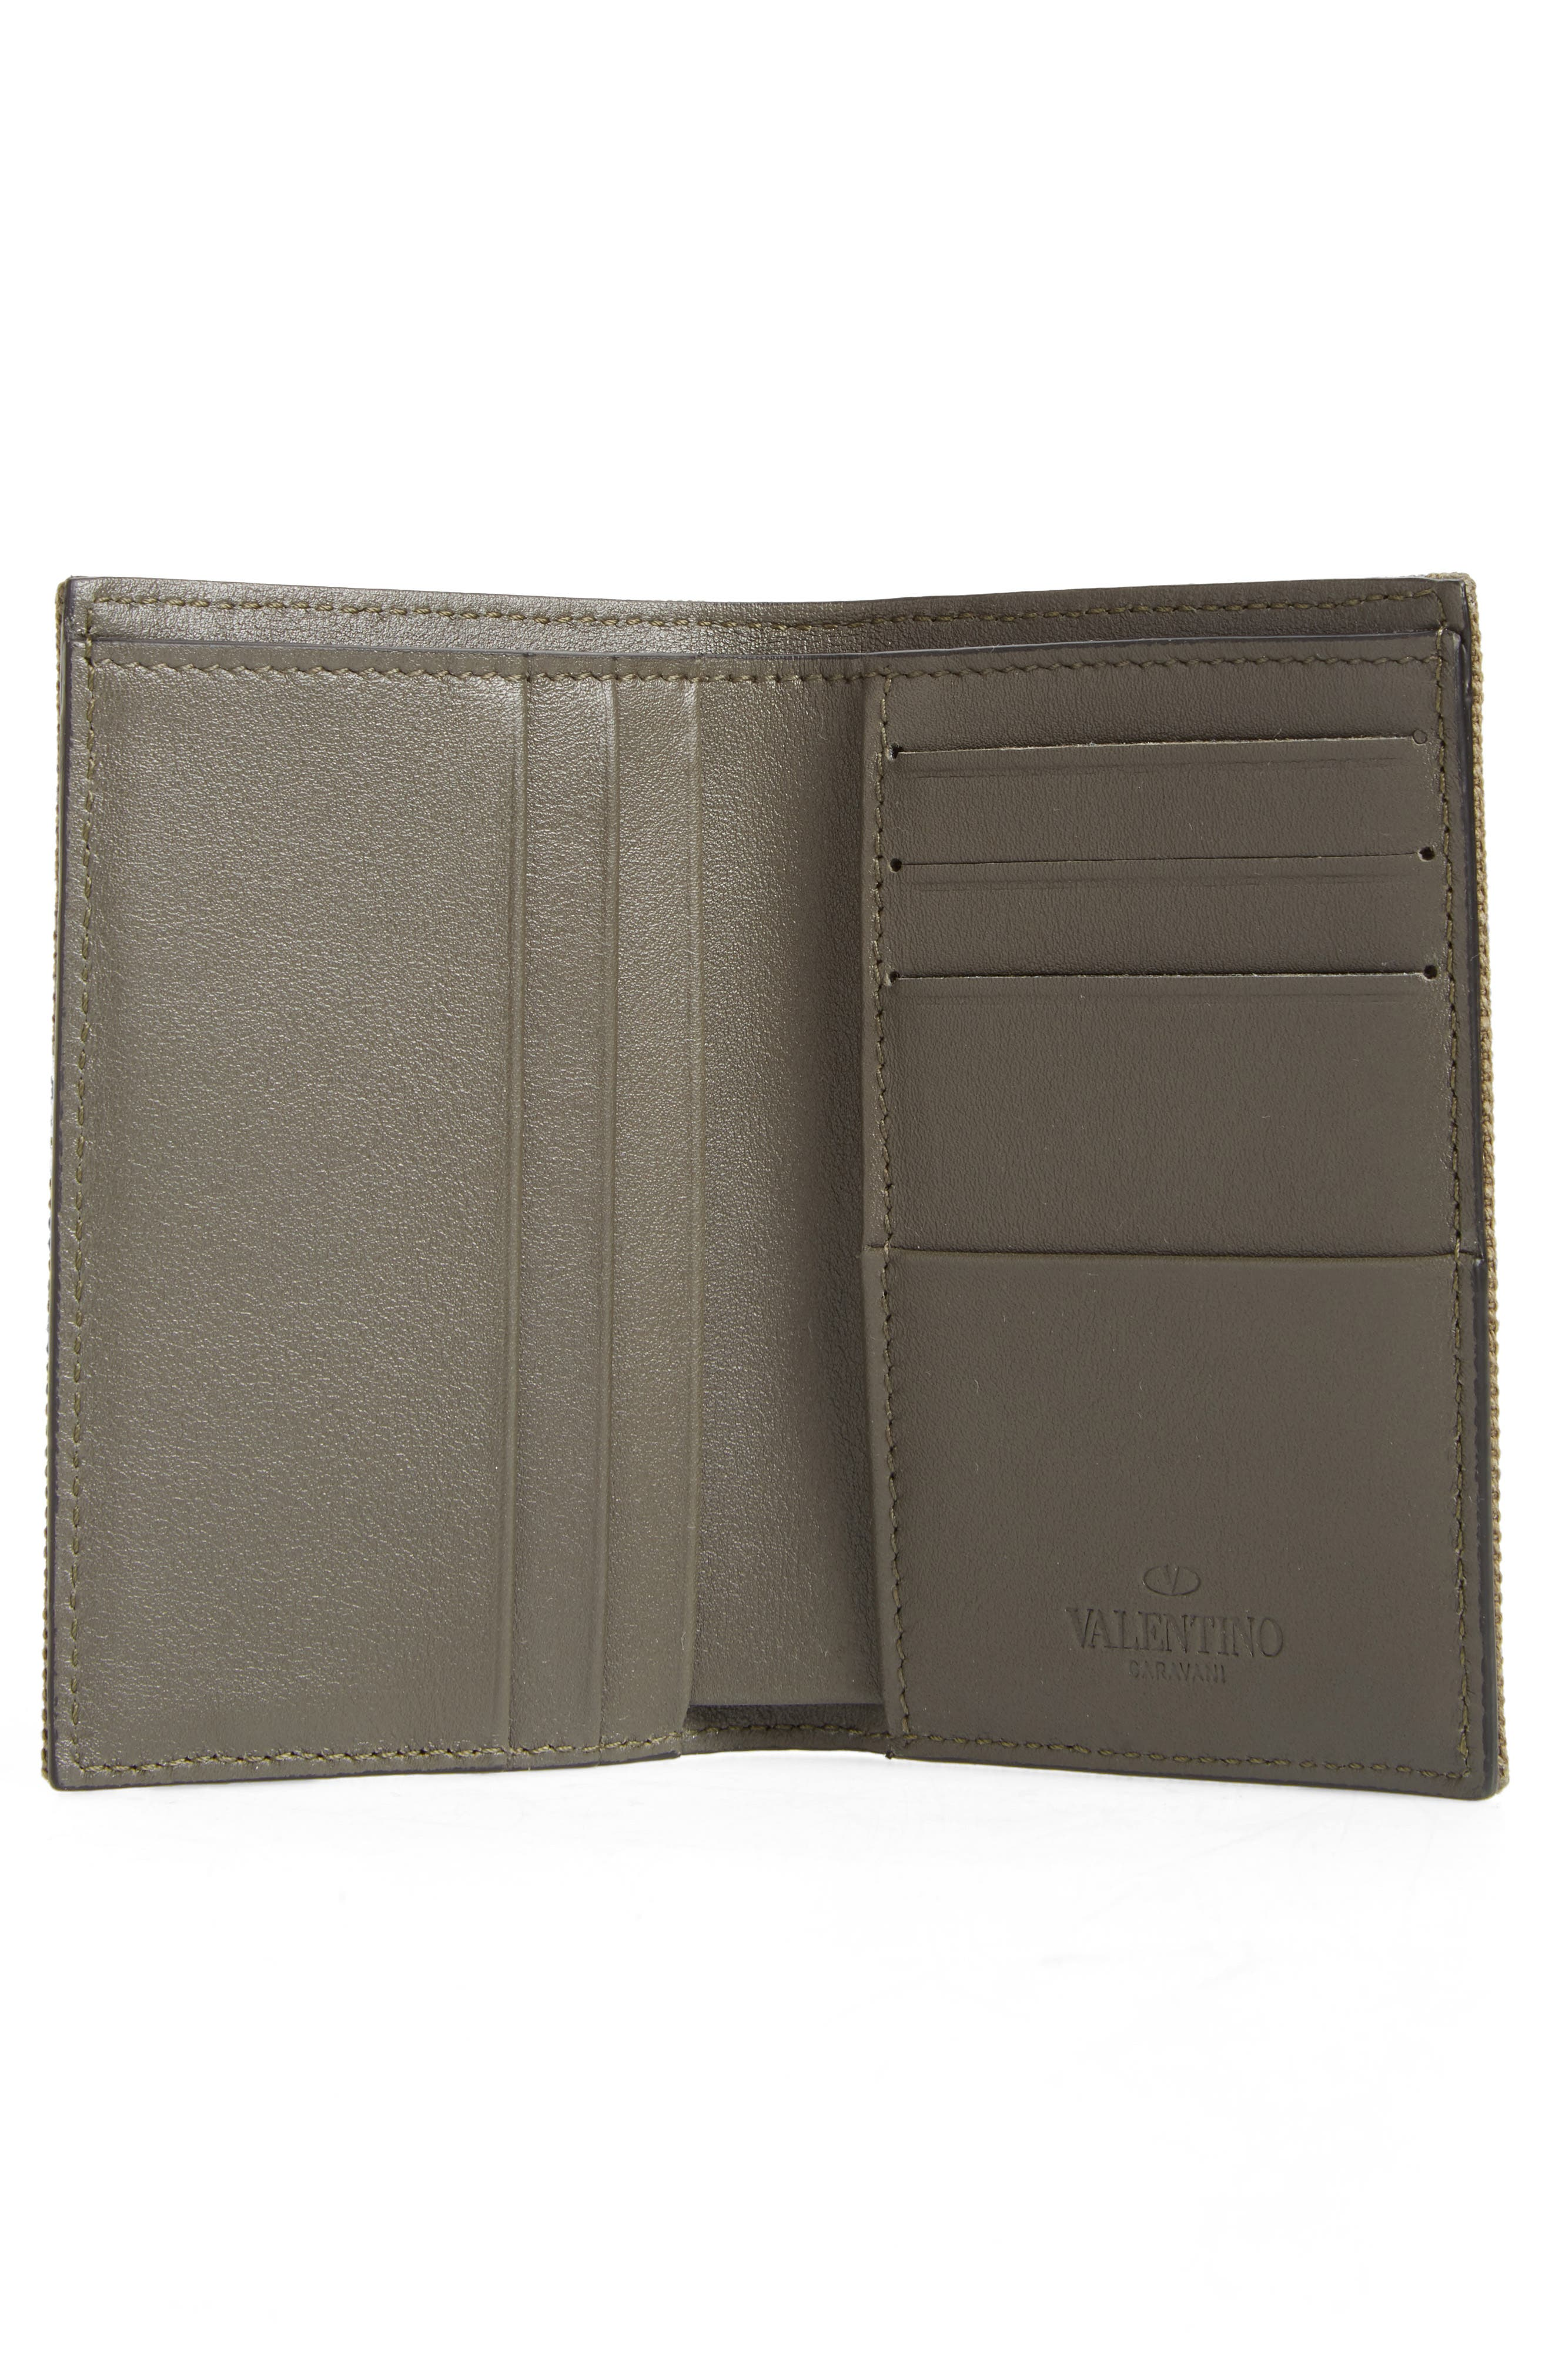 GARAVANI Stud Canvas Wallet,                             Alternate thumbnail 2, color,                             L90 Olive